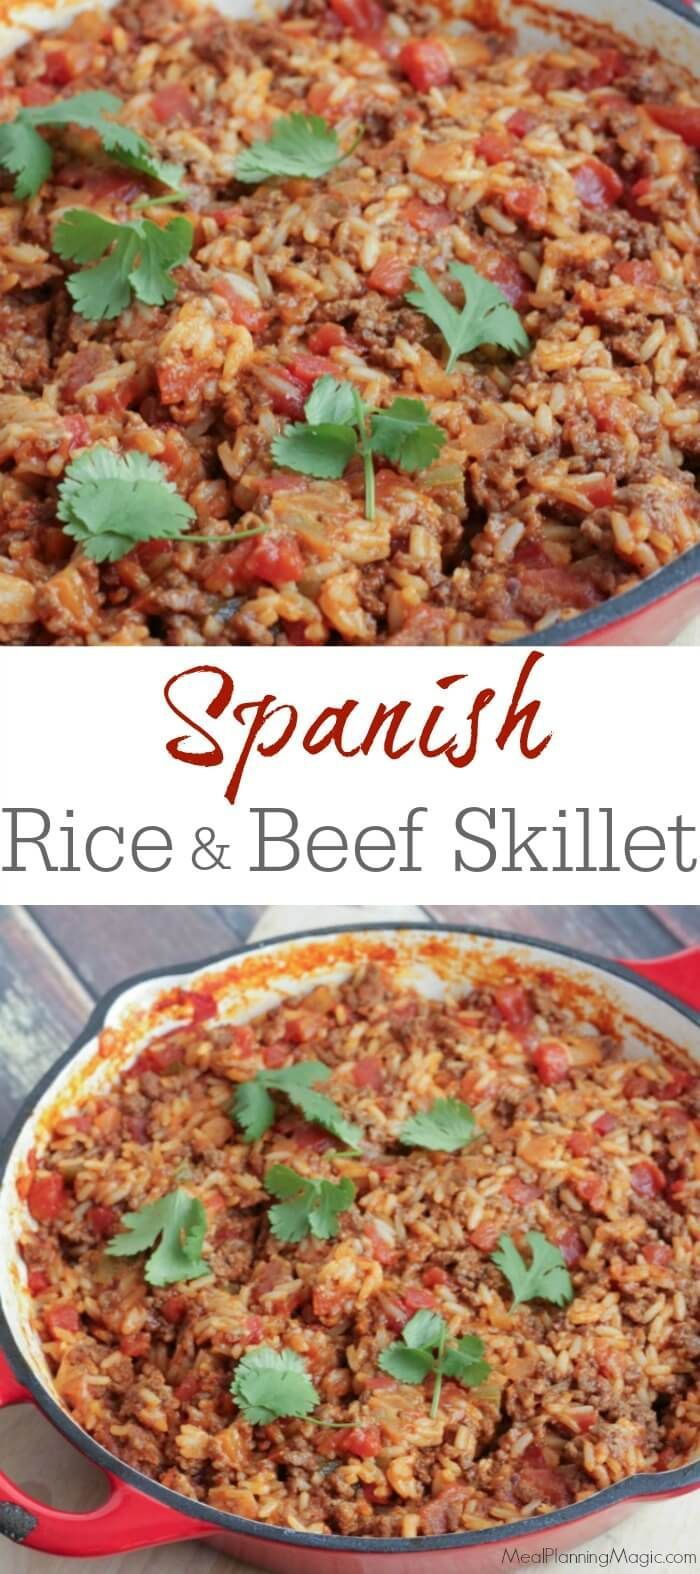 30 minutes is all it takes for this easy, filling Spanish Rice and Beef Skillet Dinner. #SundaySupper  GET THE RECIPE HERE: http://www.mealplanningmagic.com/spanish-rice-and-beef-skillet-dish/